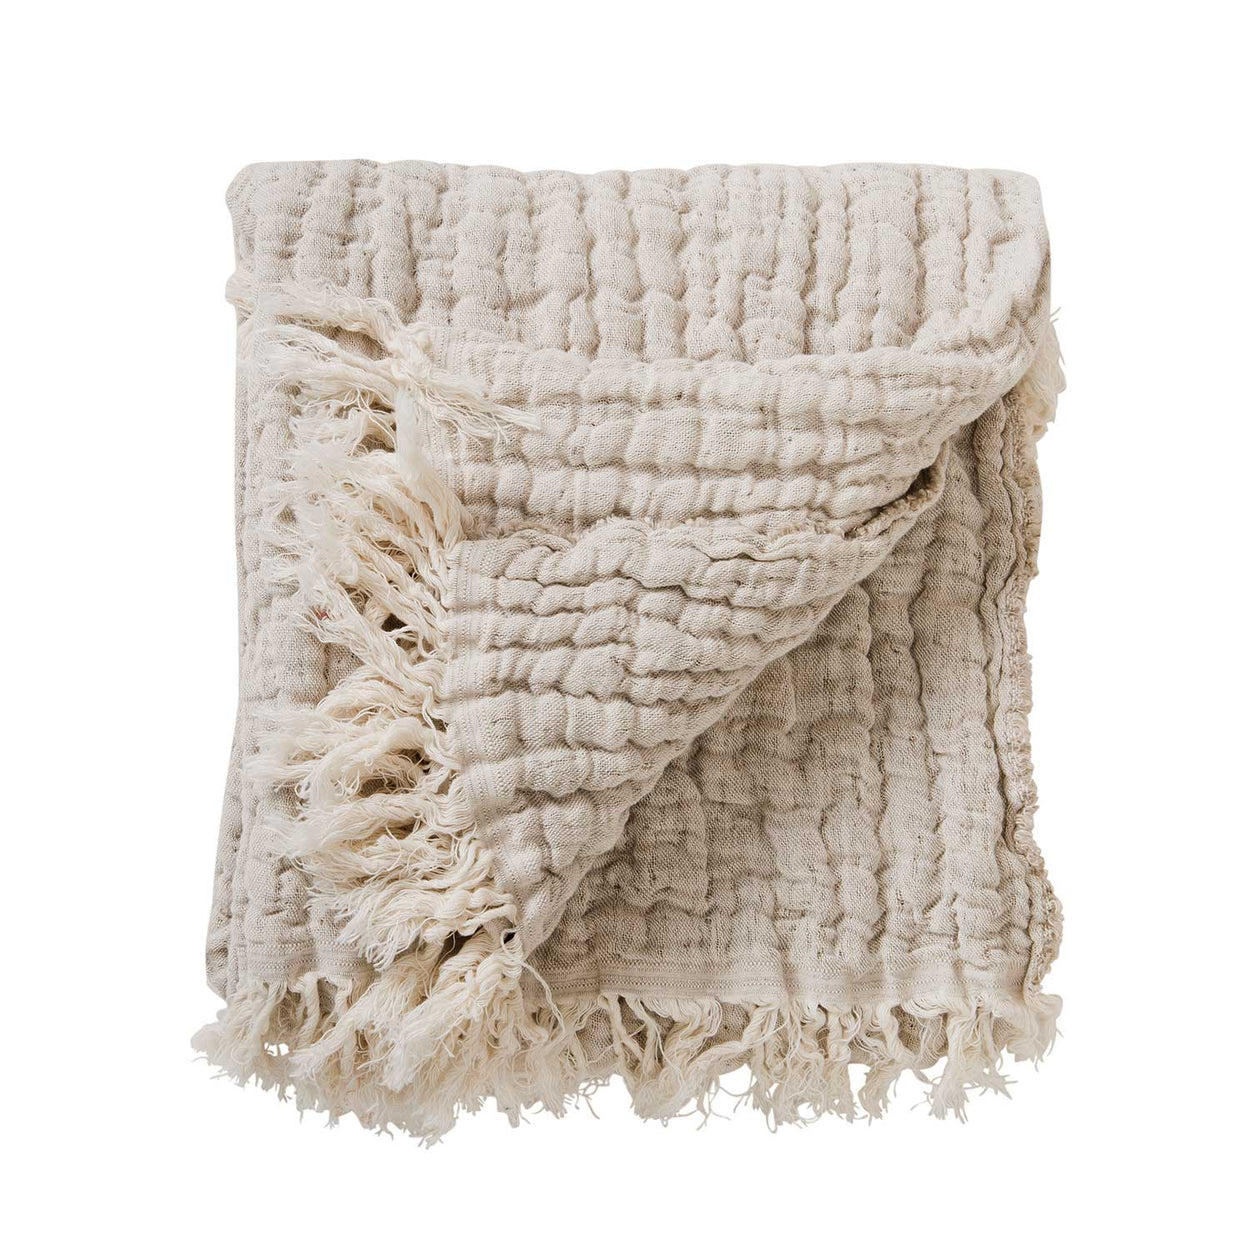 Garbo&Friends Mellow Lin natural fibre blanket